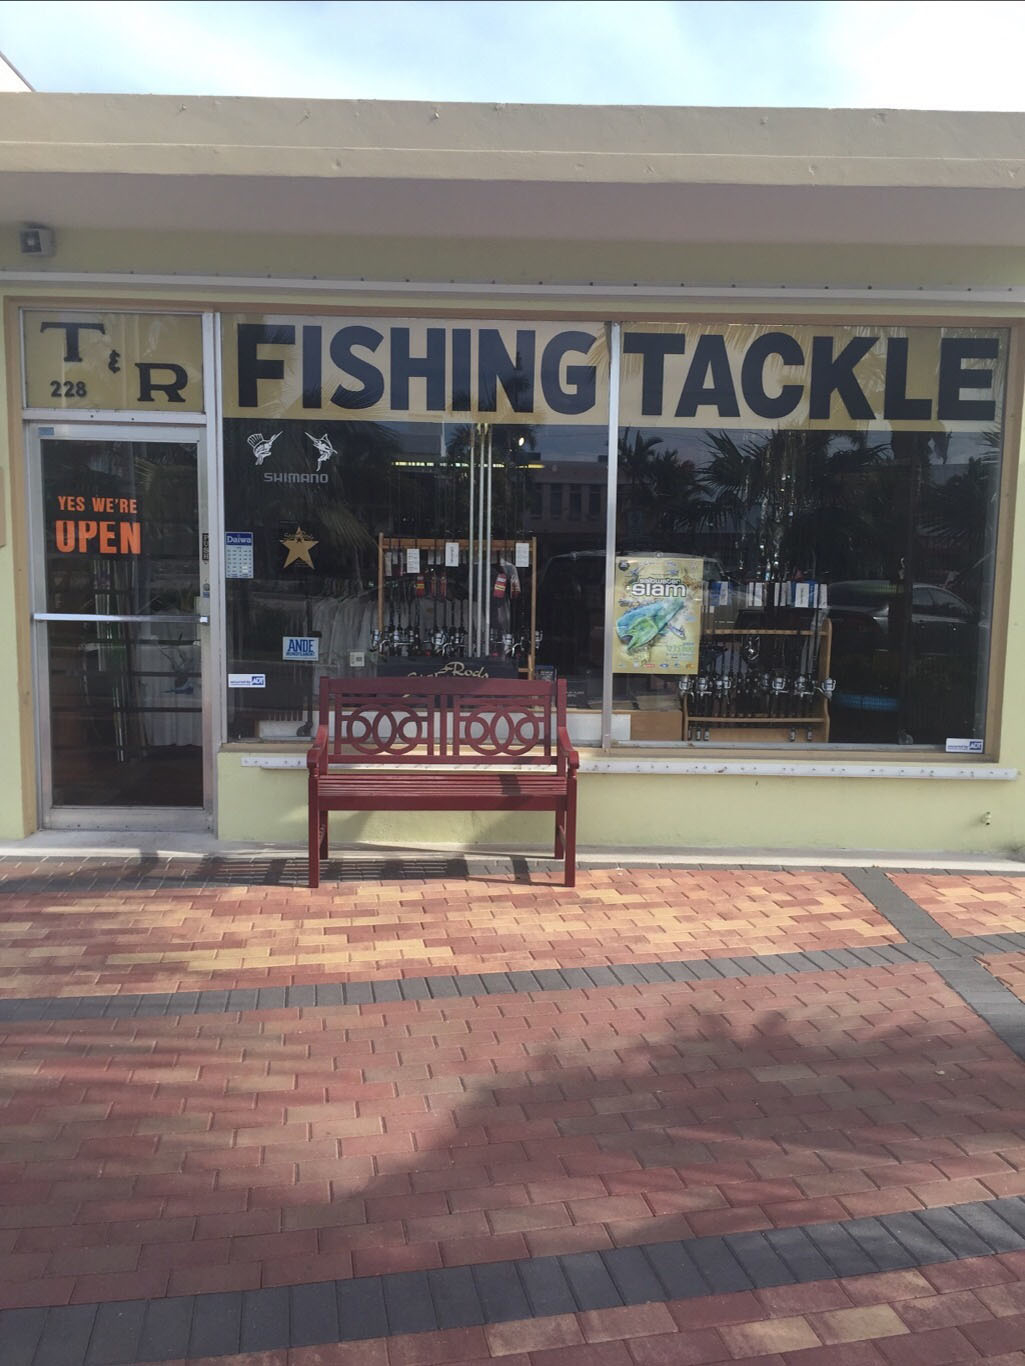 T And R Tackle Shop image 20